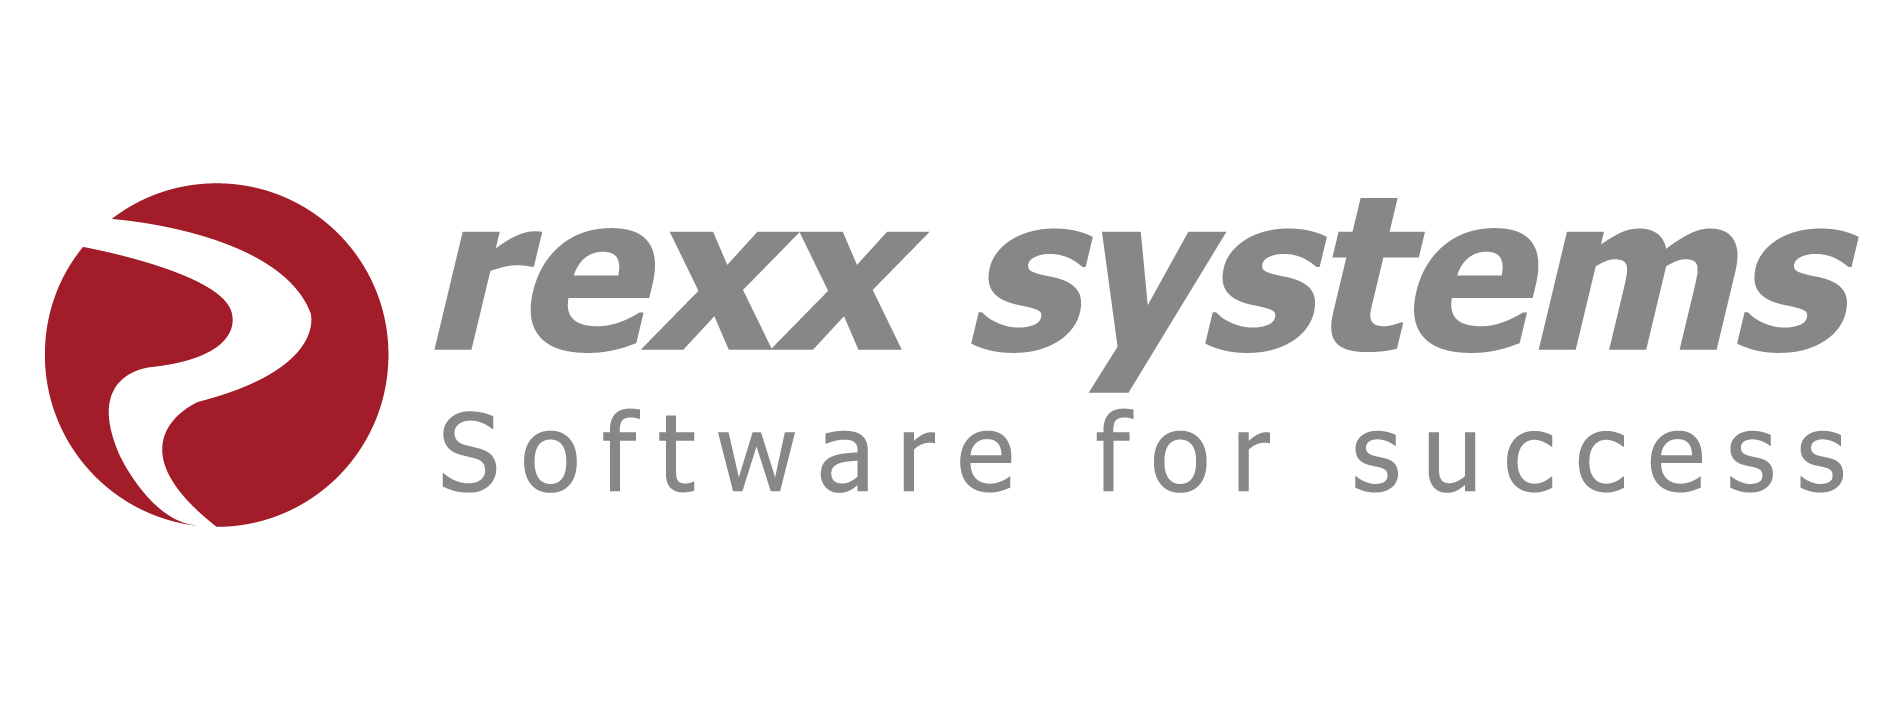 rexx-systems-logo-claim-lang